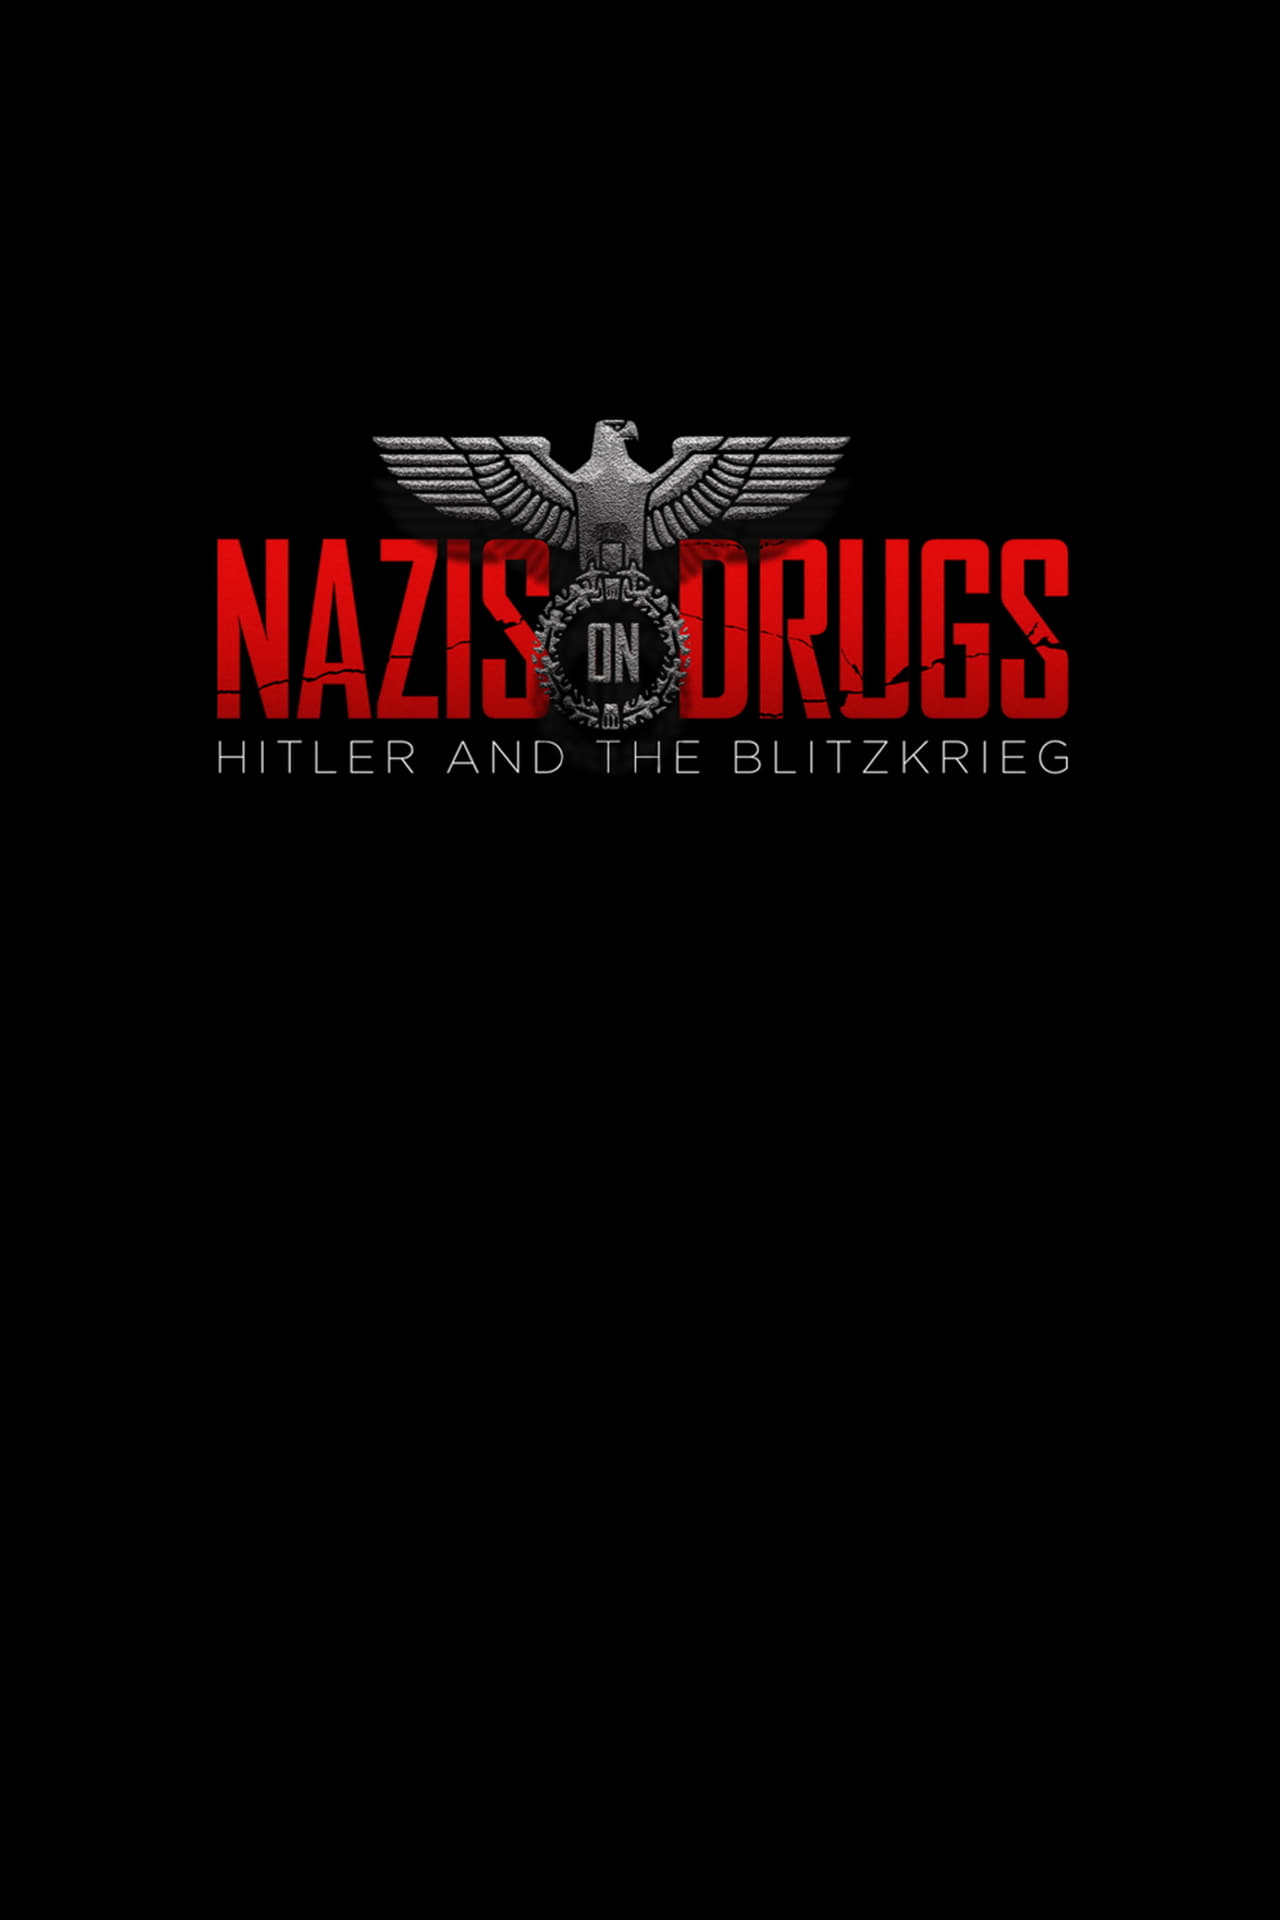 Nazis on Drugs: Hitler and the Blitzkrieg Free movie online at 123movies